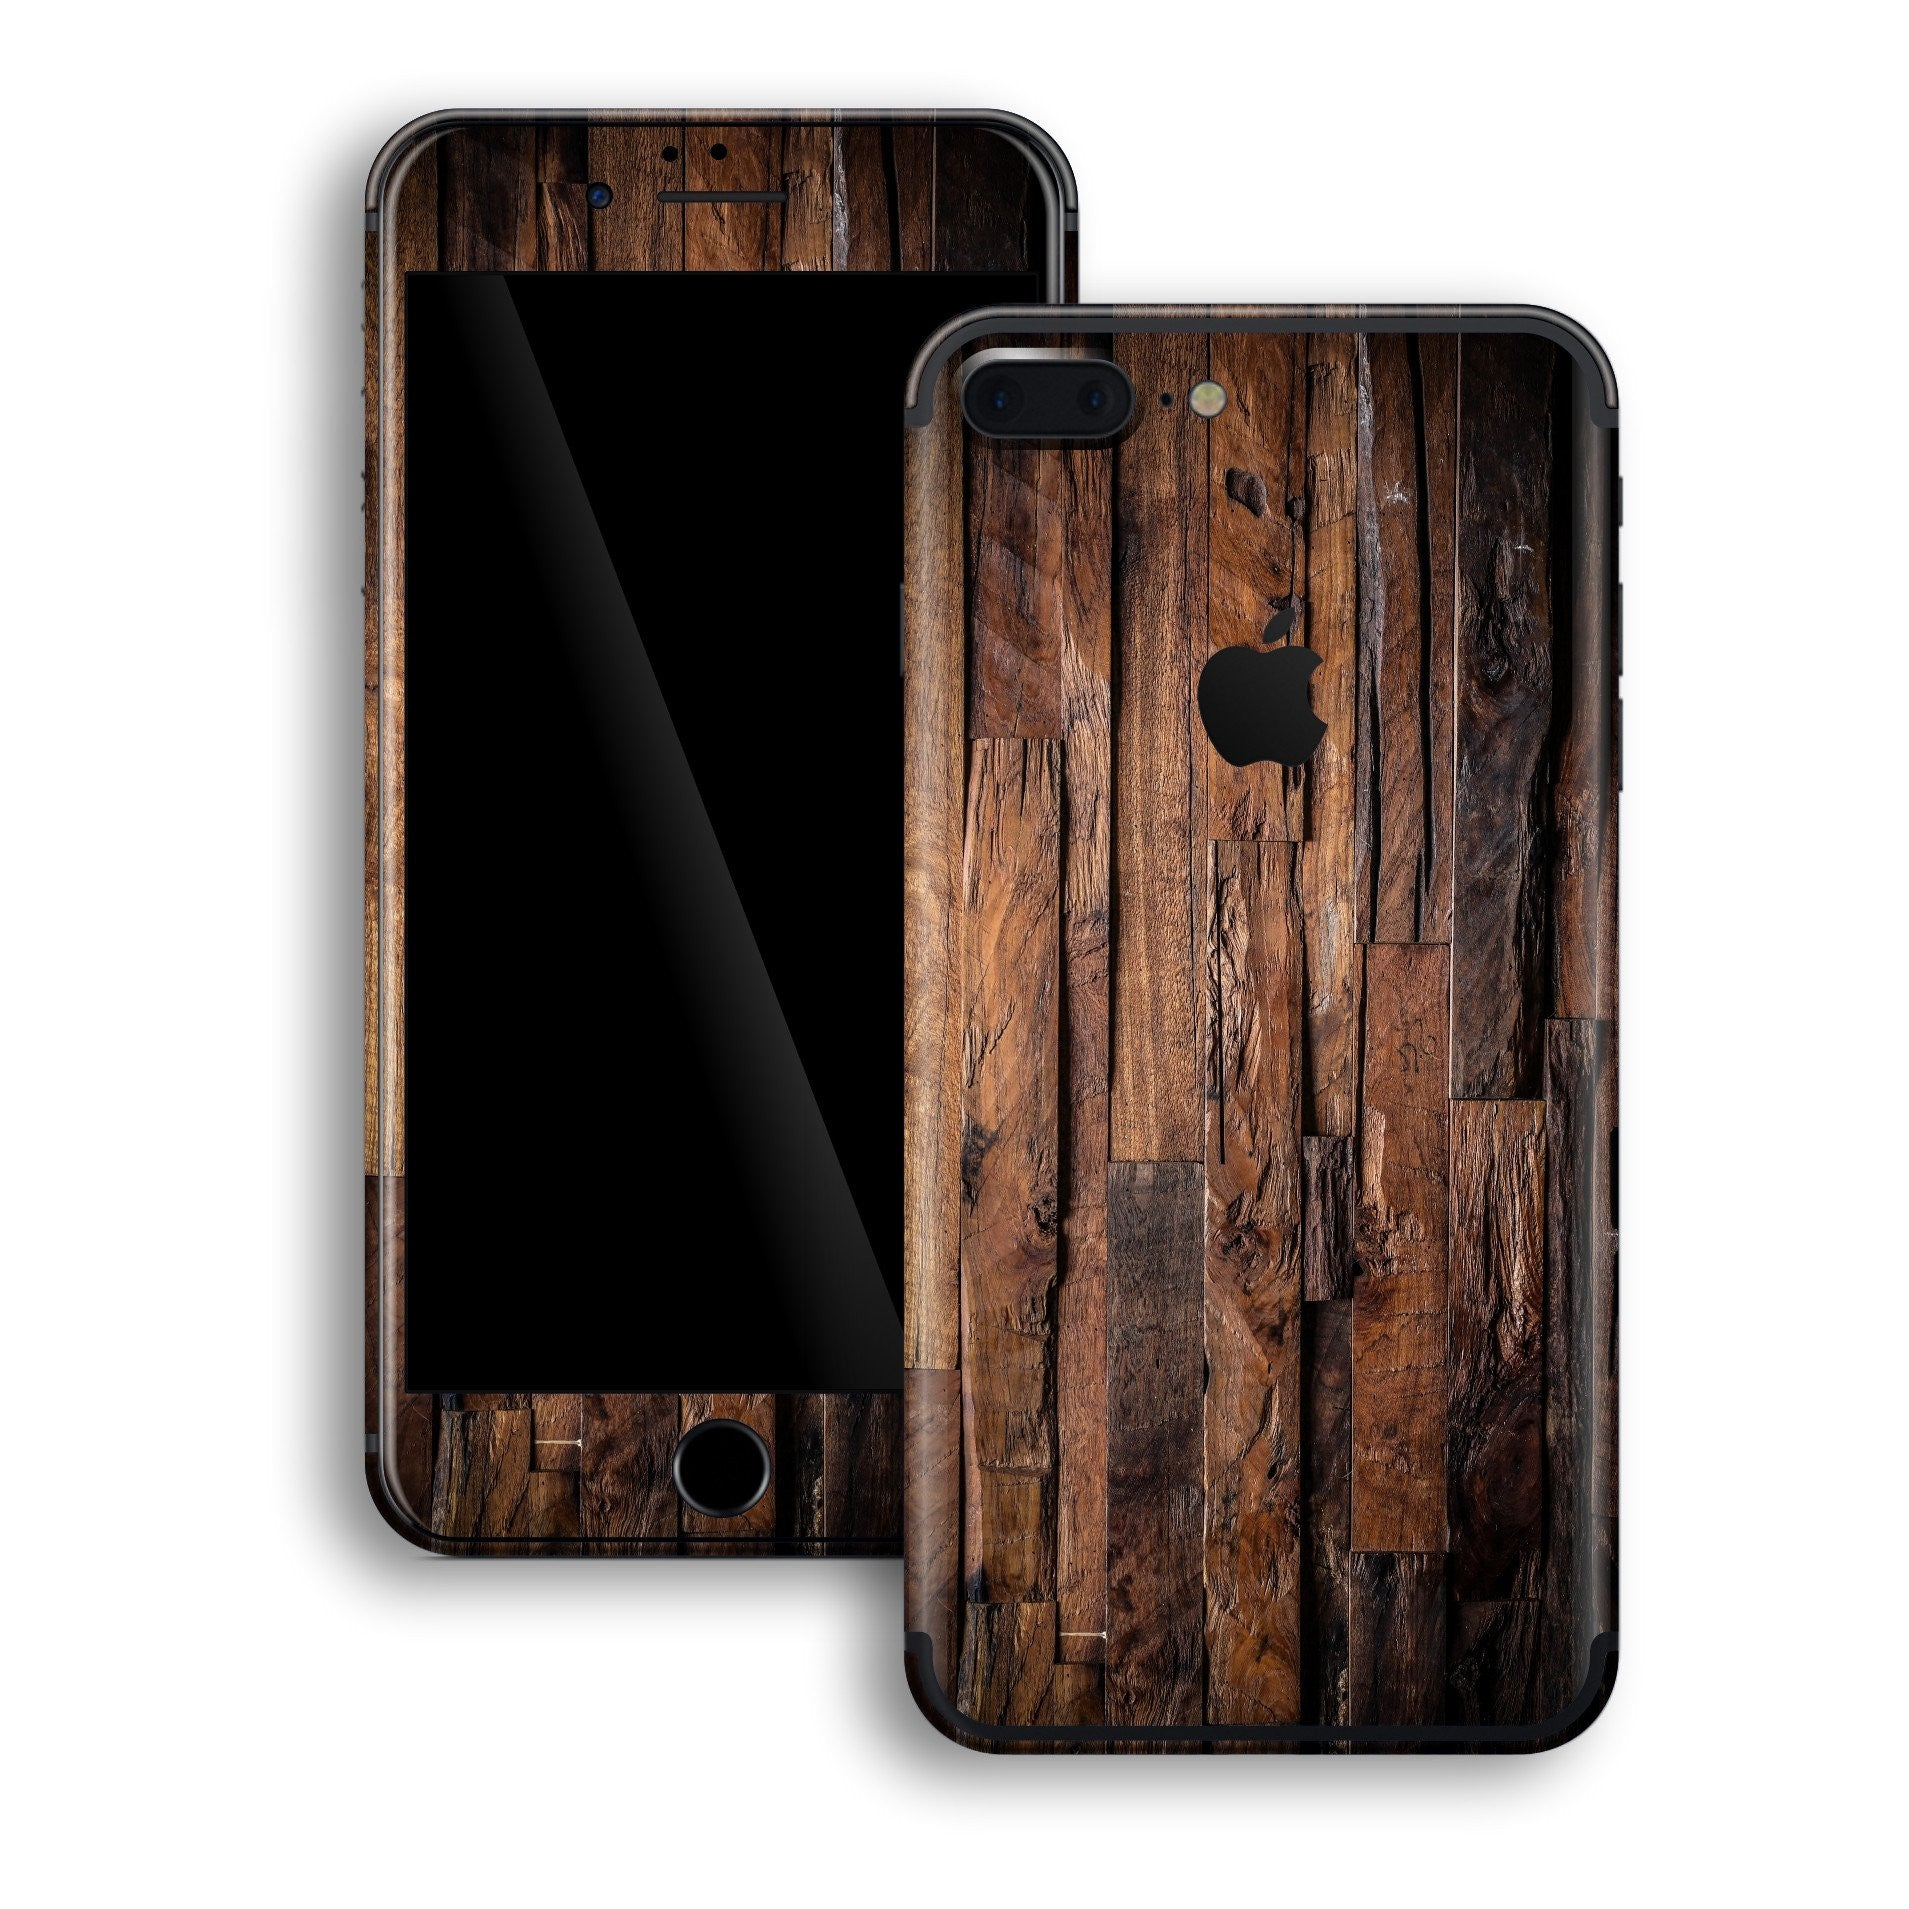 iPhone 7 PLUS Print Custom Signature Wood Wooden Skin Wrap Decal by EasySkinz